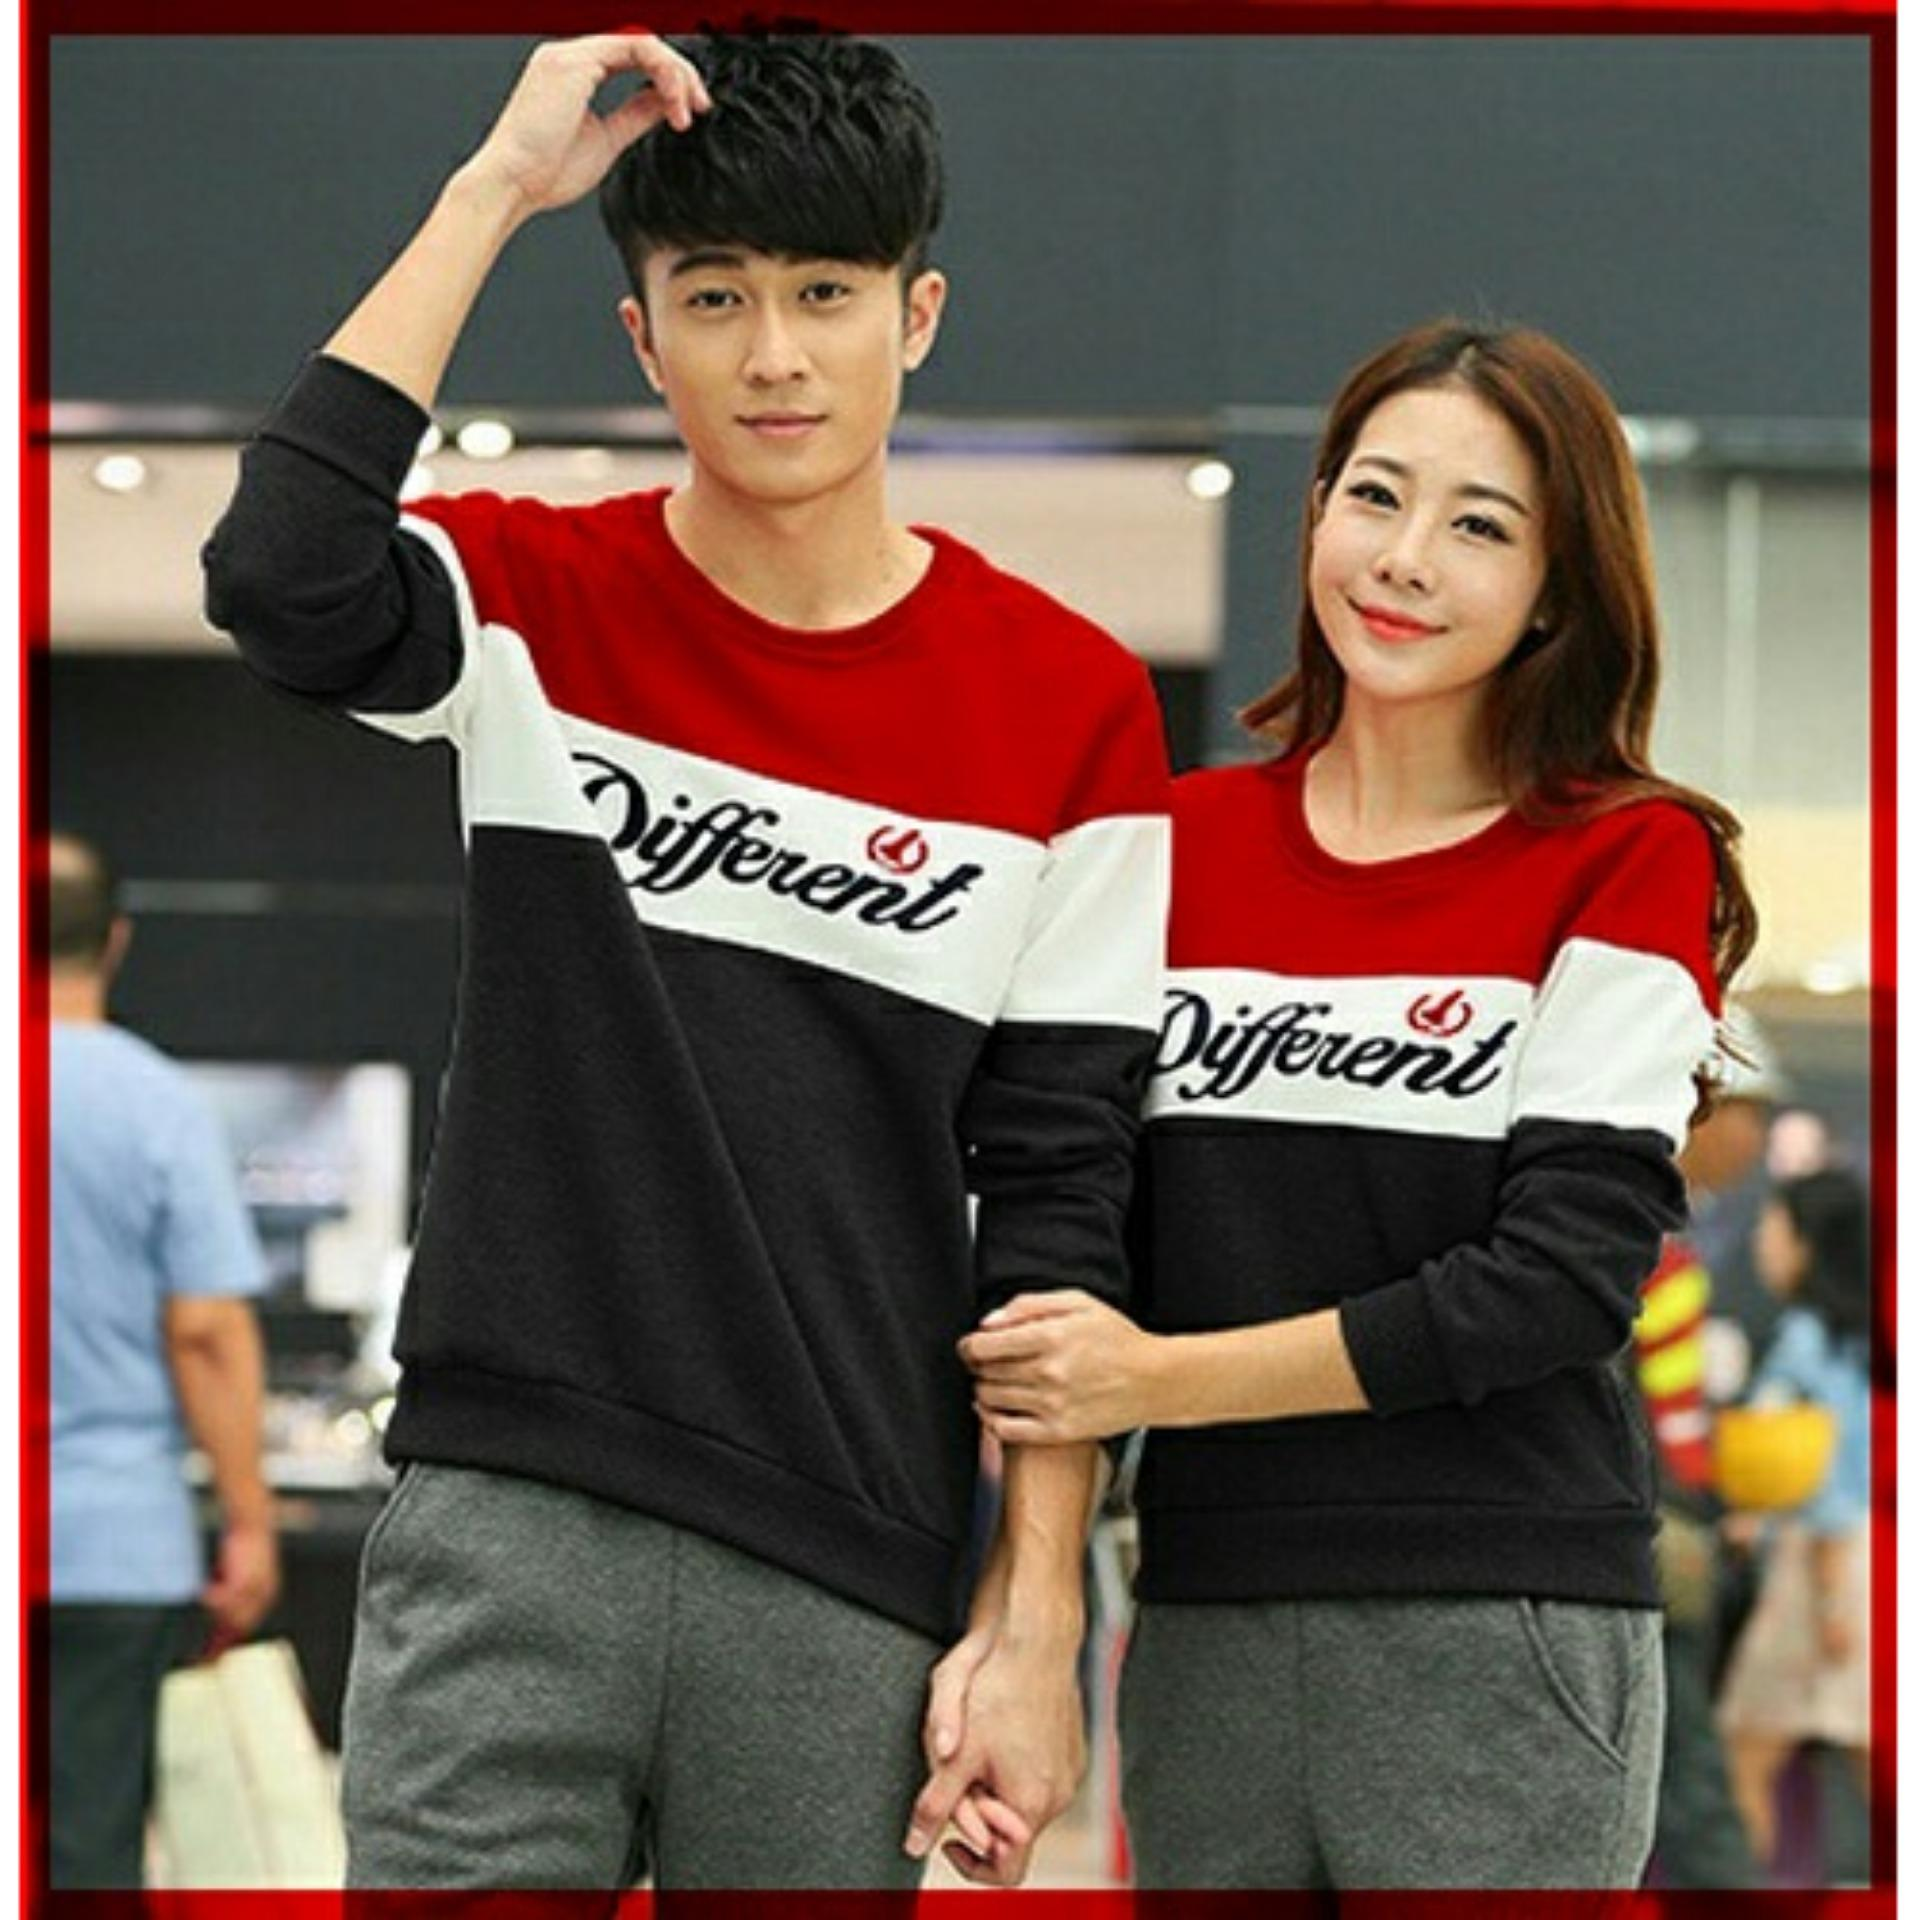 Kaos Couple Lengan Panjang Different